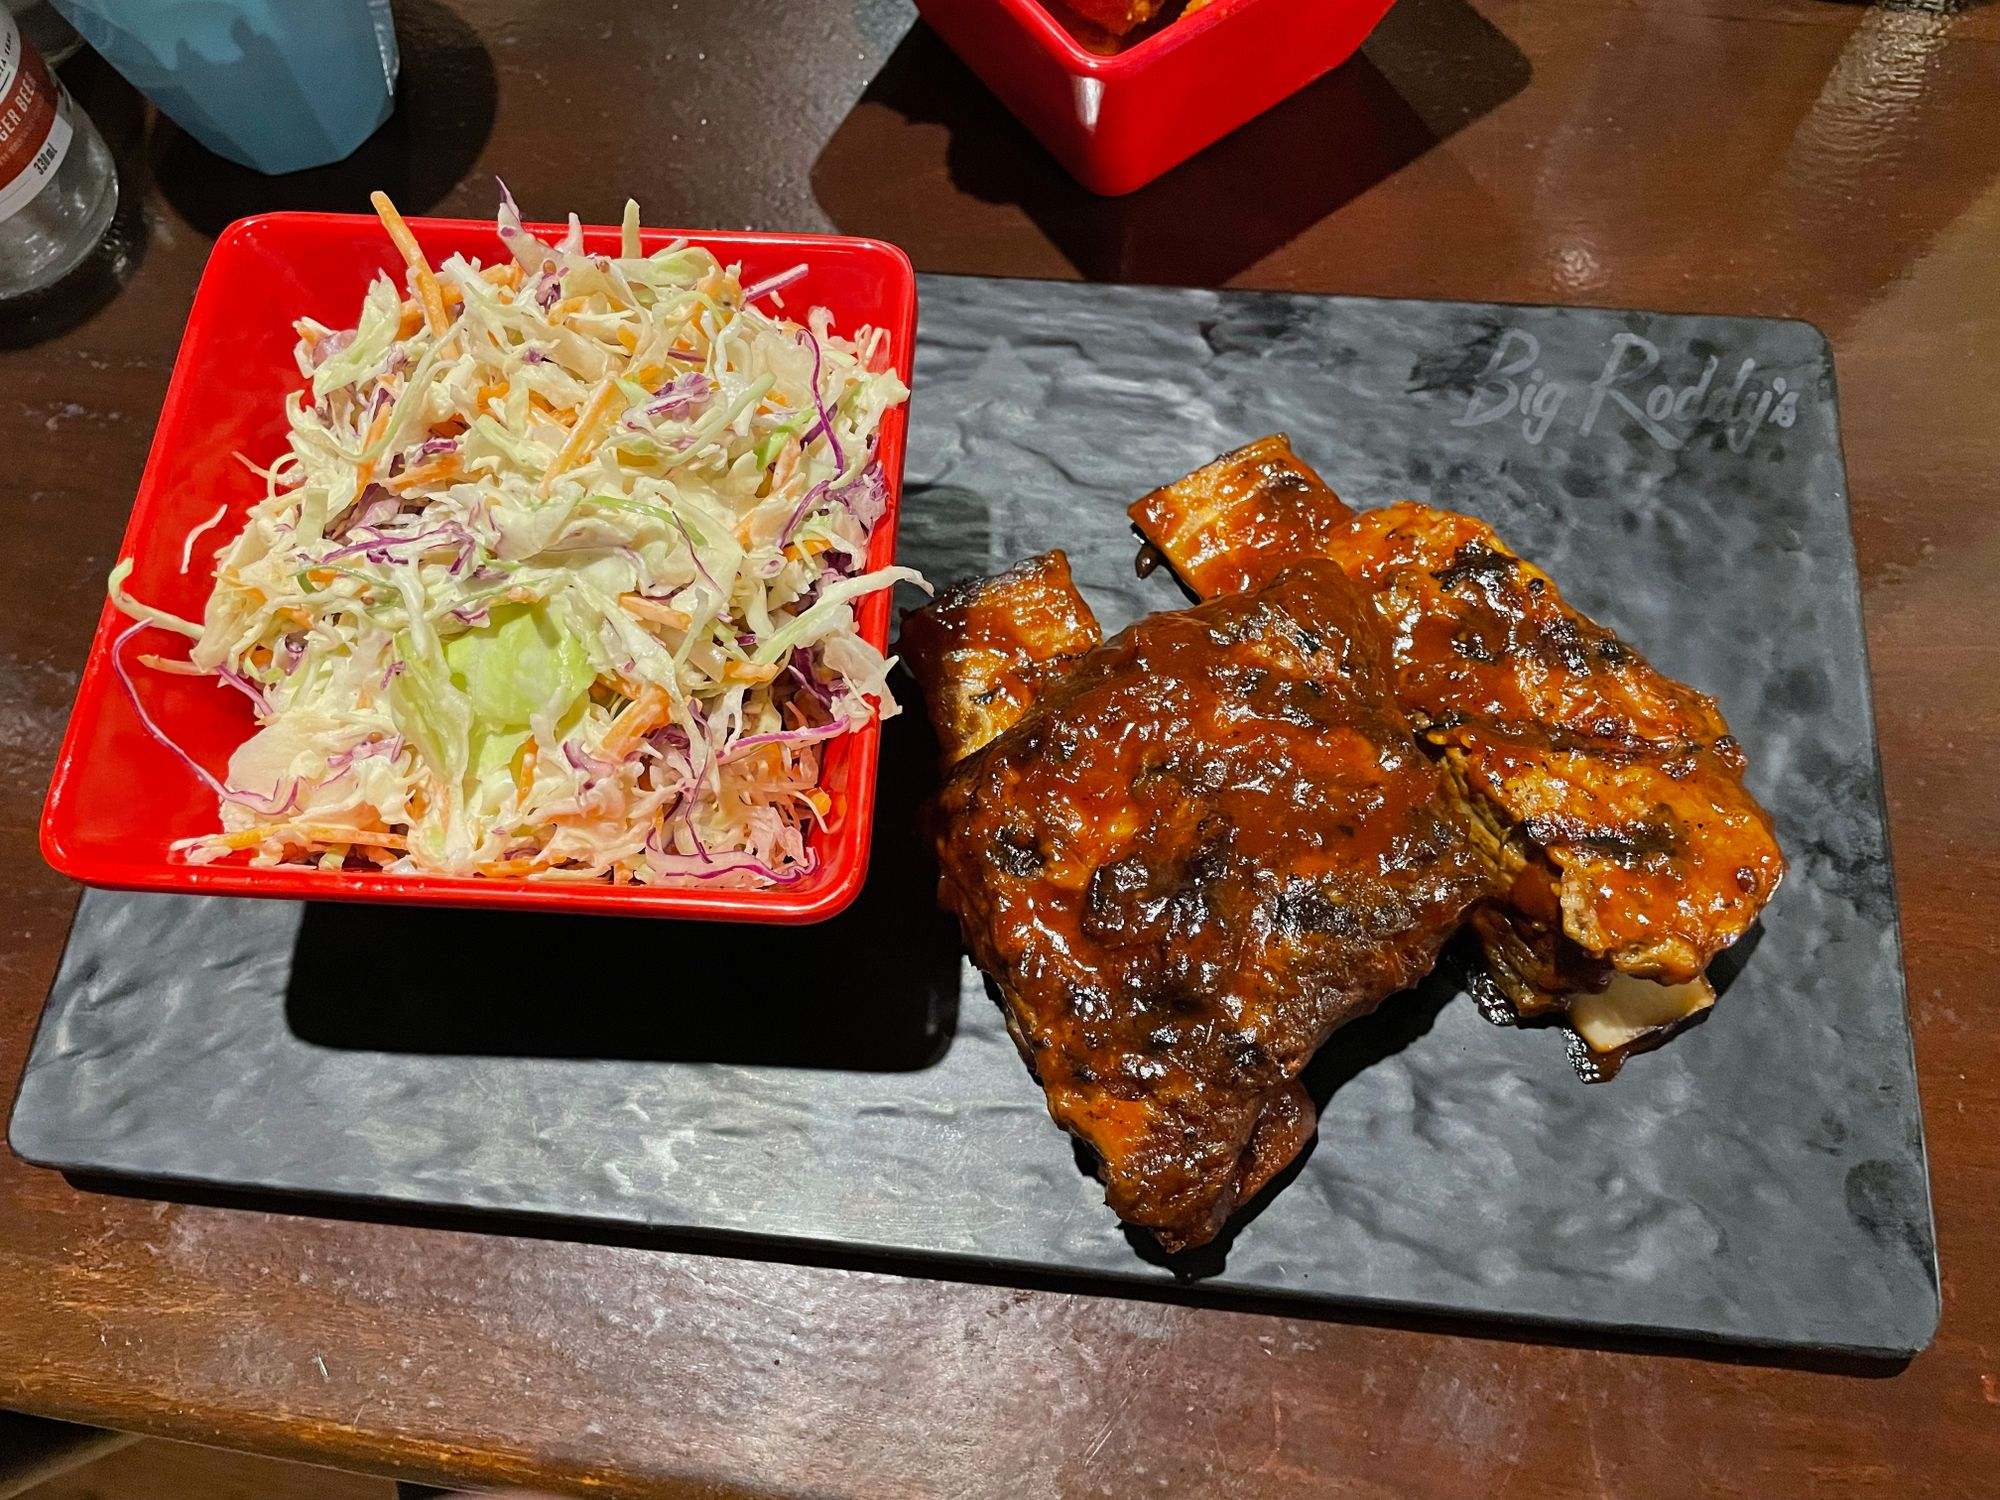 pork ribs with sauce and coleslaw on a rectangular plate from Big Roddy's